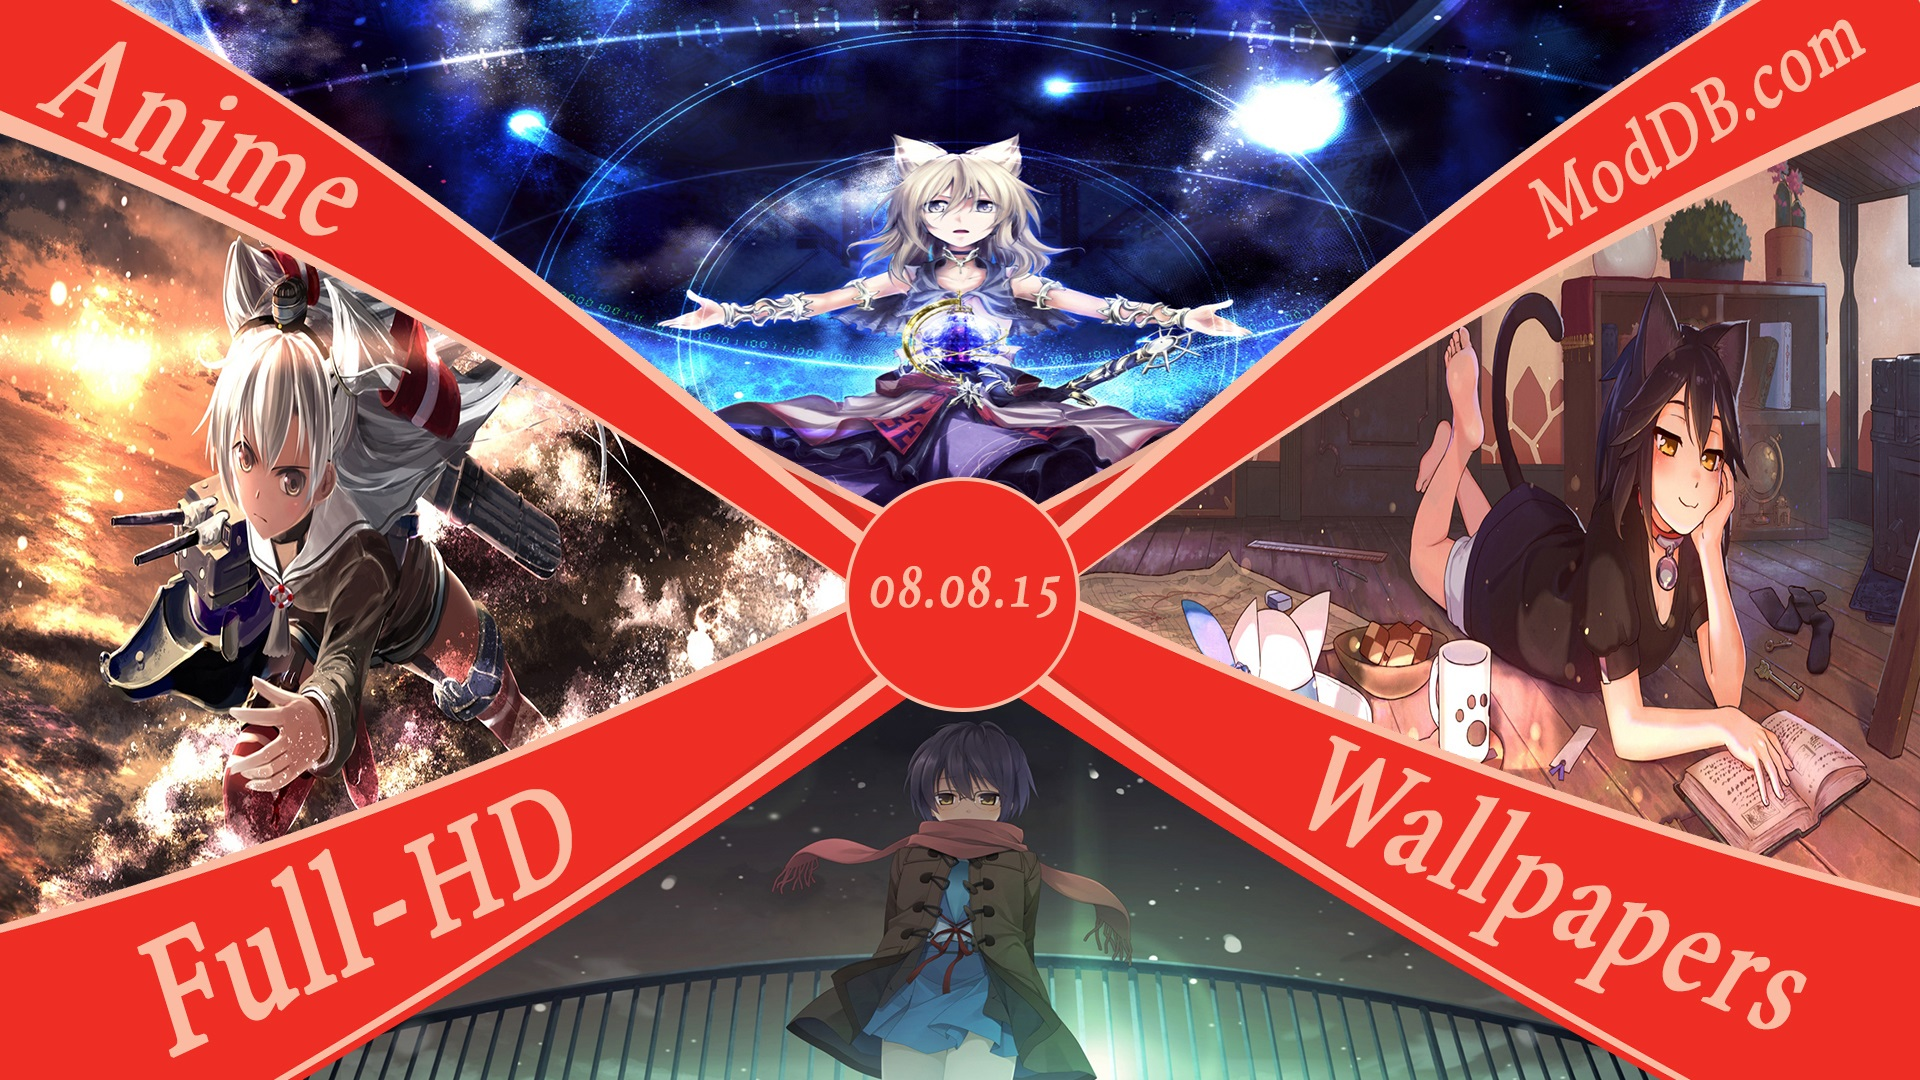 Old Anime Wallpaper's (Full-HD) - 08.08.15 file - Indie DB